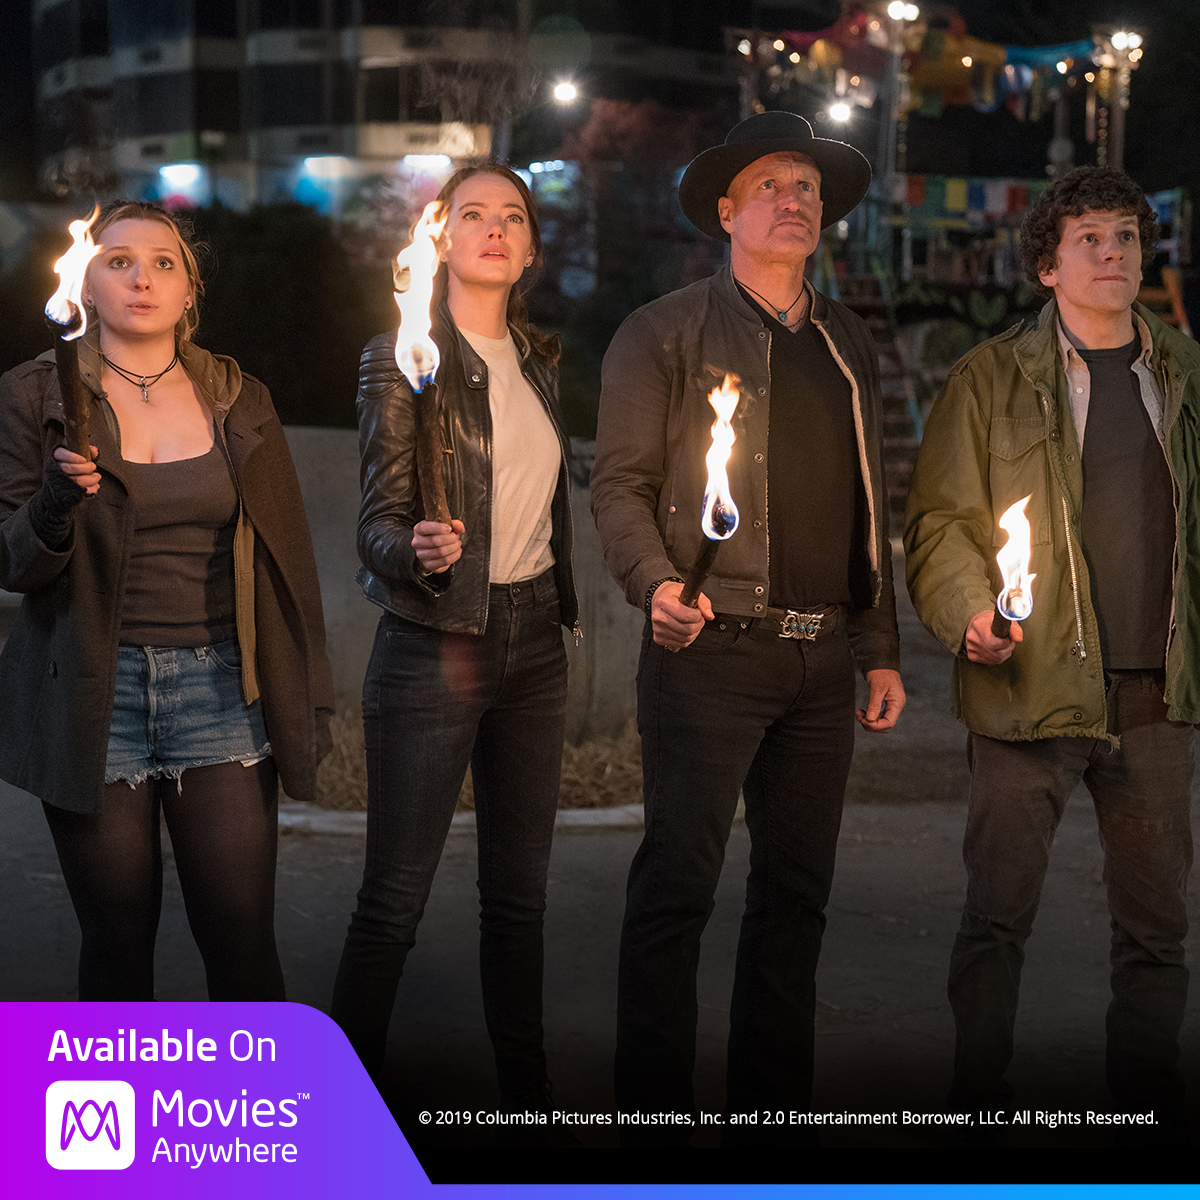 BOOM. YEAH! 💥 #Zombieland: Double Tap is available on @movies_anywhere today! https://t.co/4kR9uhUZYy https://t.co/lZEvZvnfTs